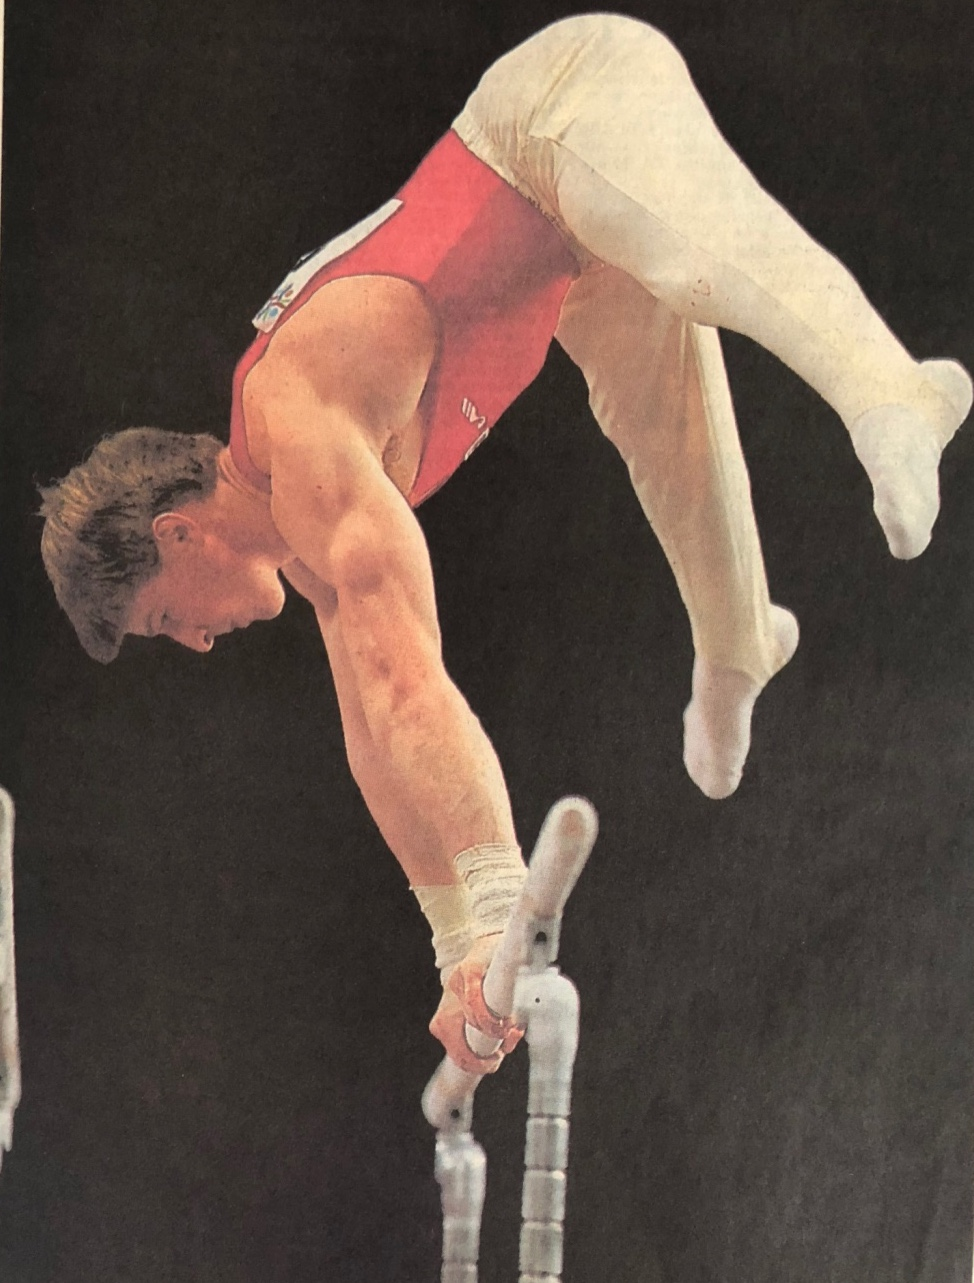 Paul Bowler competing on Parallel Bars